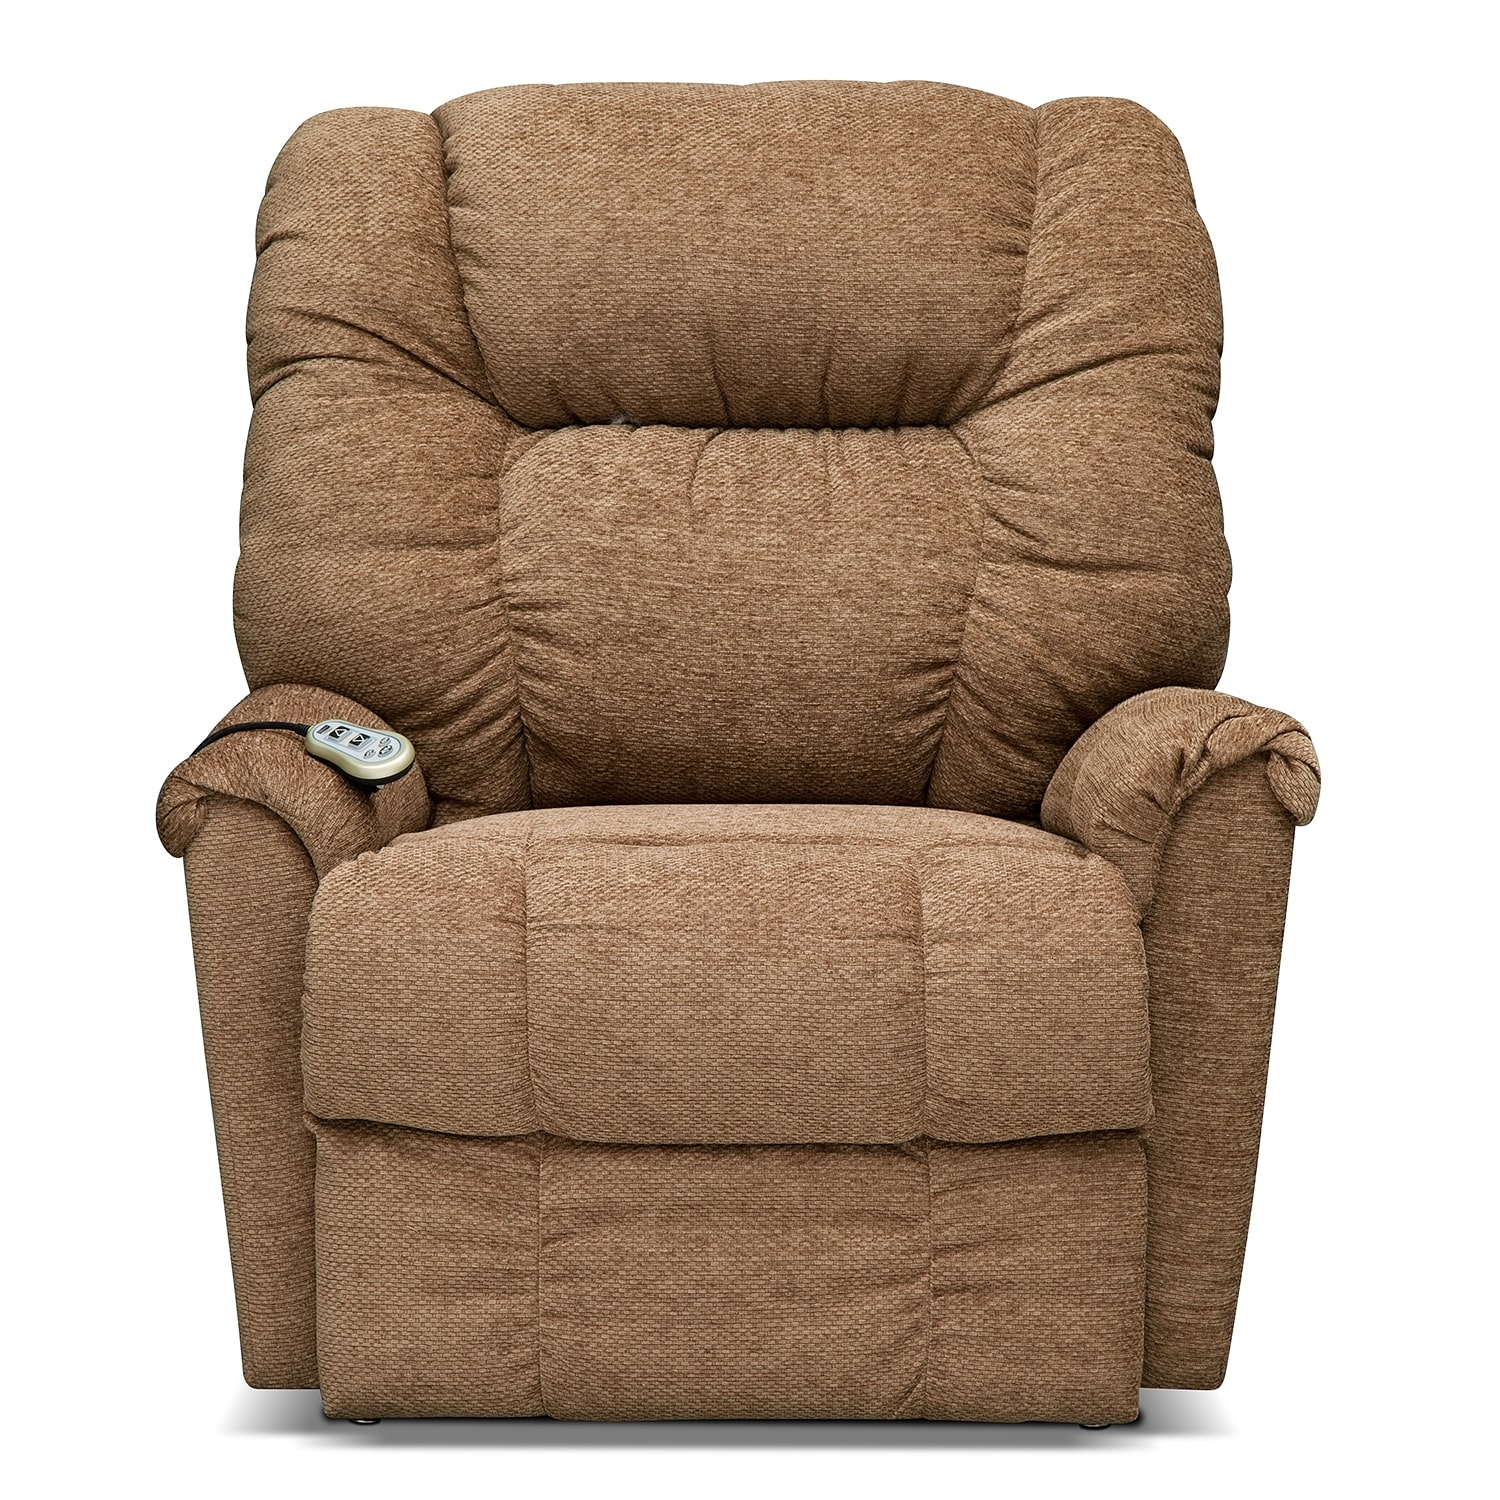 Ultra fort Lift Chair Home Furnitures References